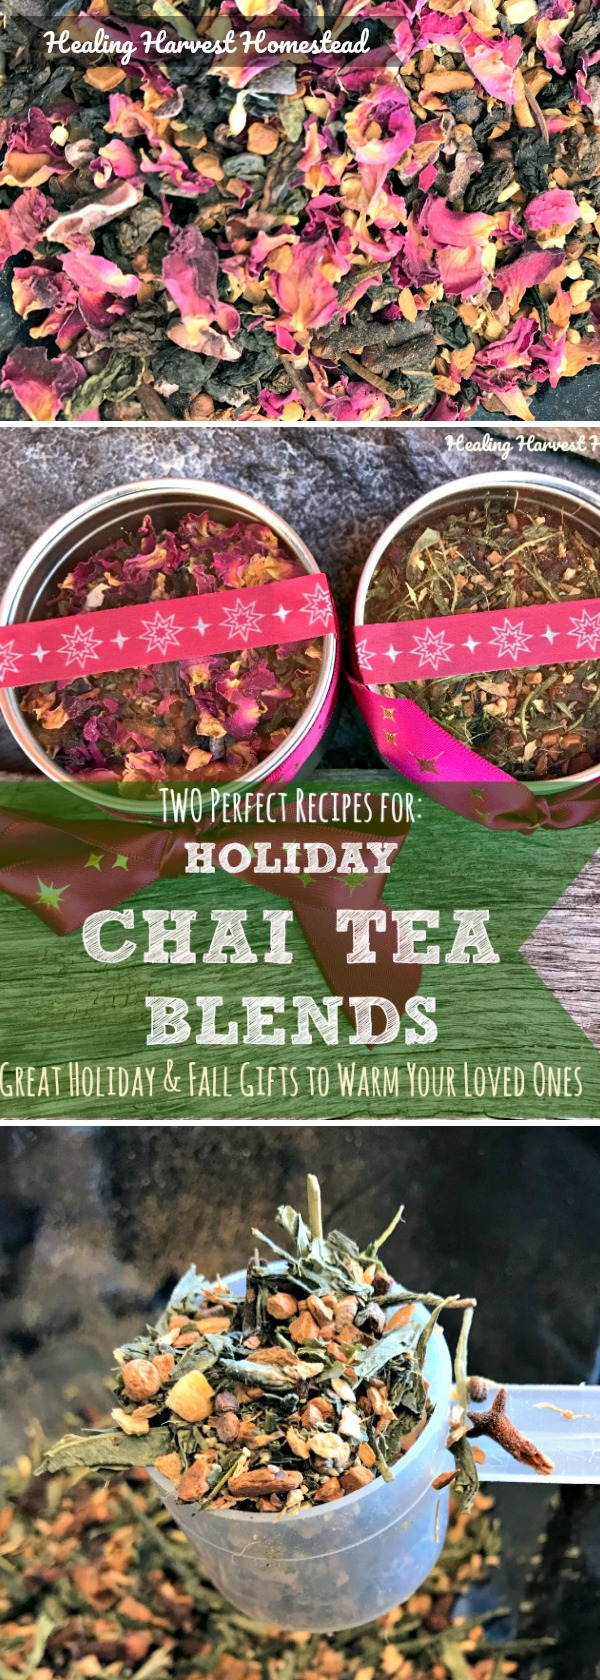 Here are my two favorite Chai Tea Recipes: Green Tea Chai and Rosy Chocolate Chai. They are perfect for gift giving, enjoying on cool days and colder nights, and are wonderful teas for health! Make your own tea blends, and package them up for perfect homemade. holiday gifts!